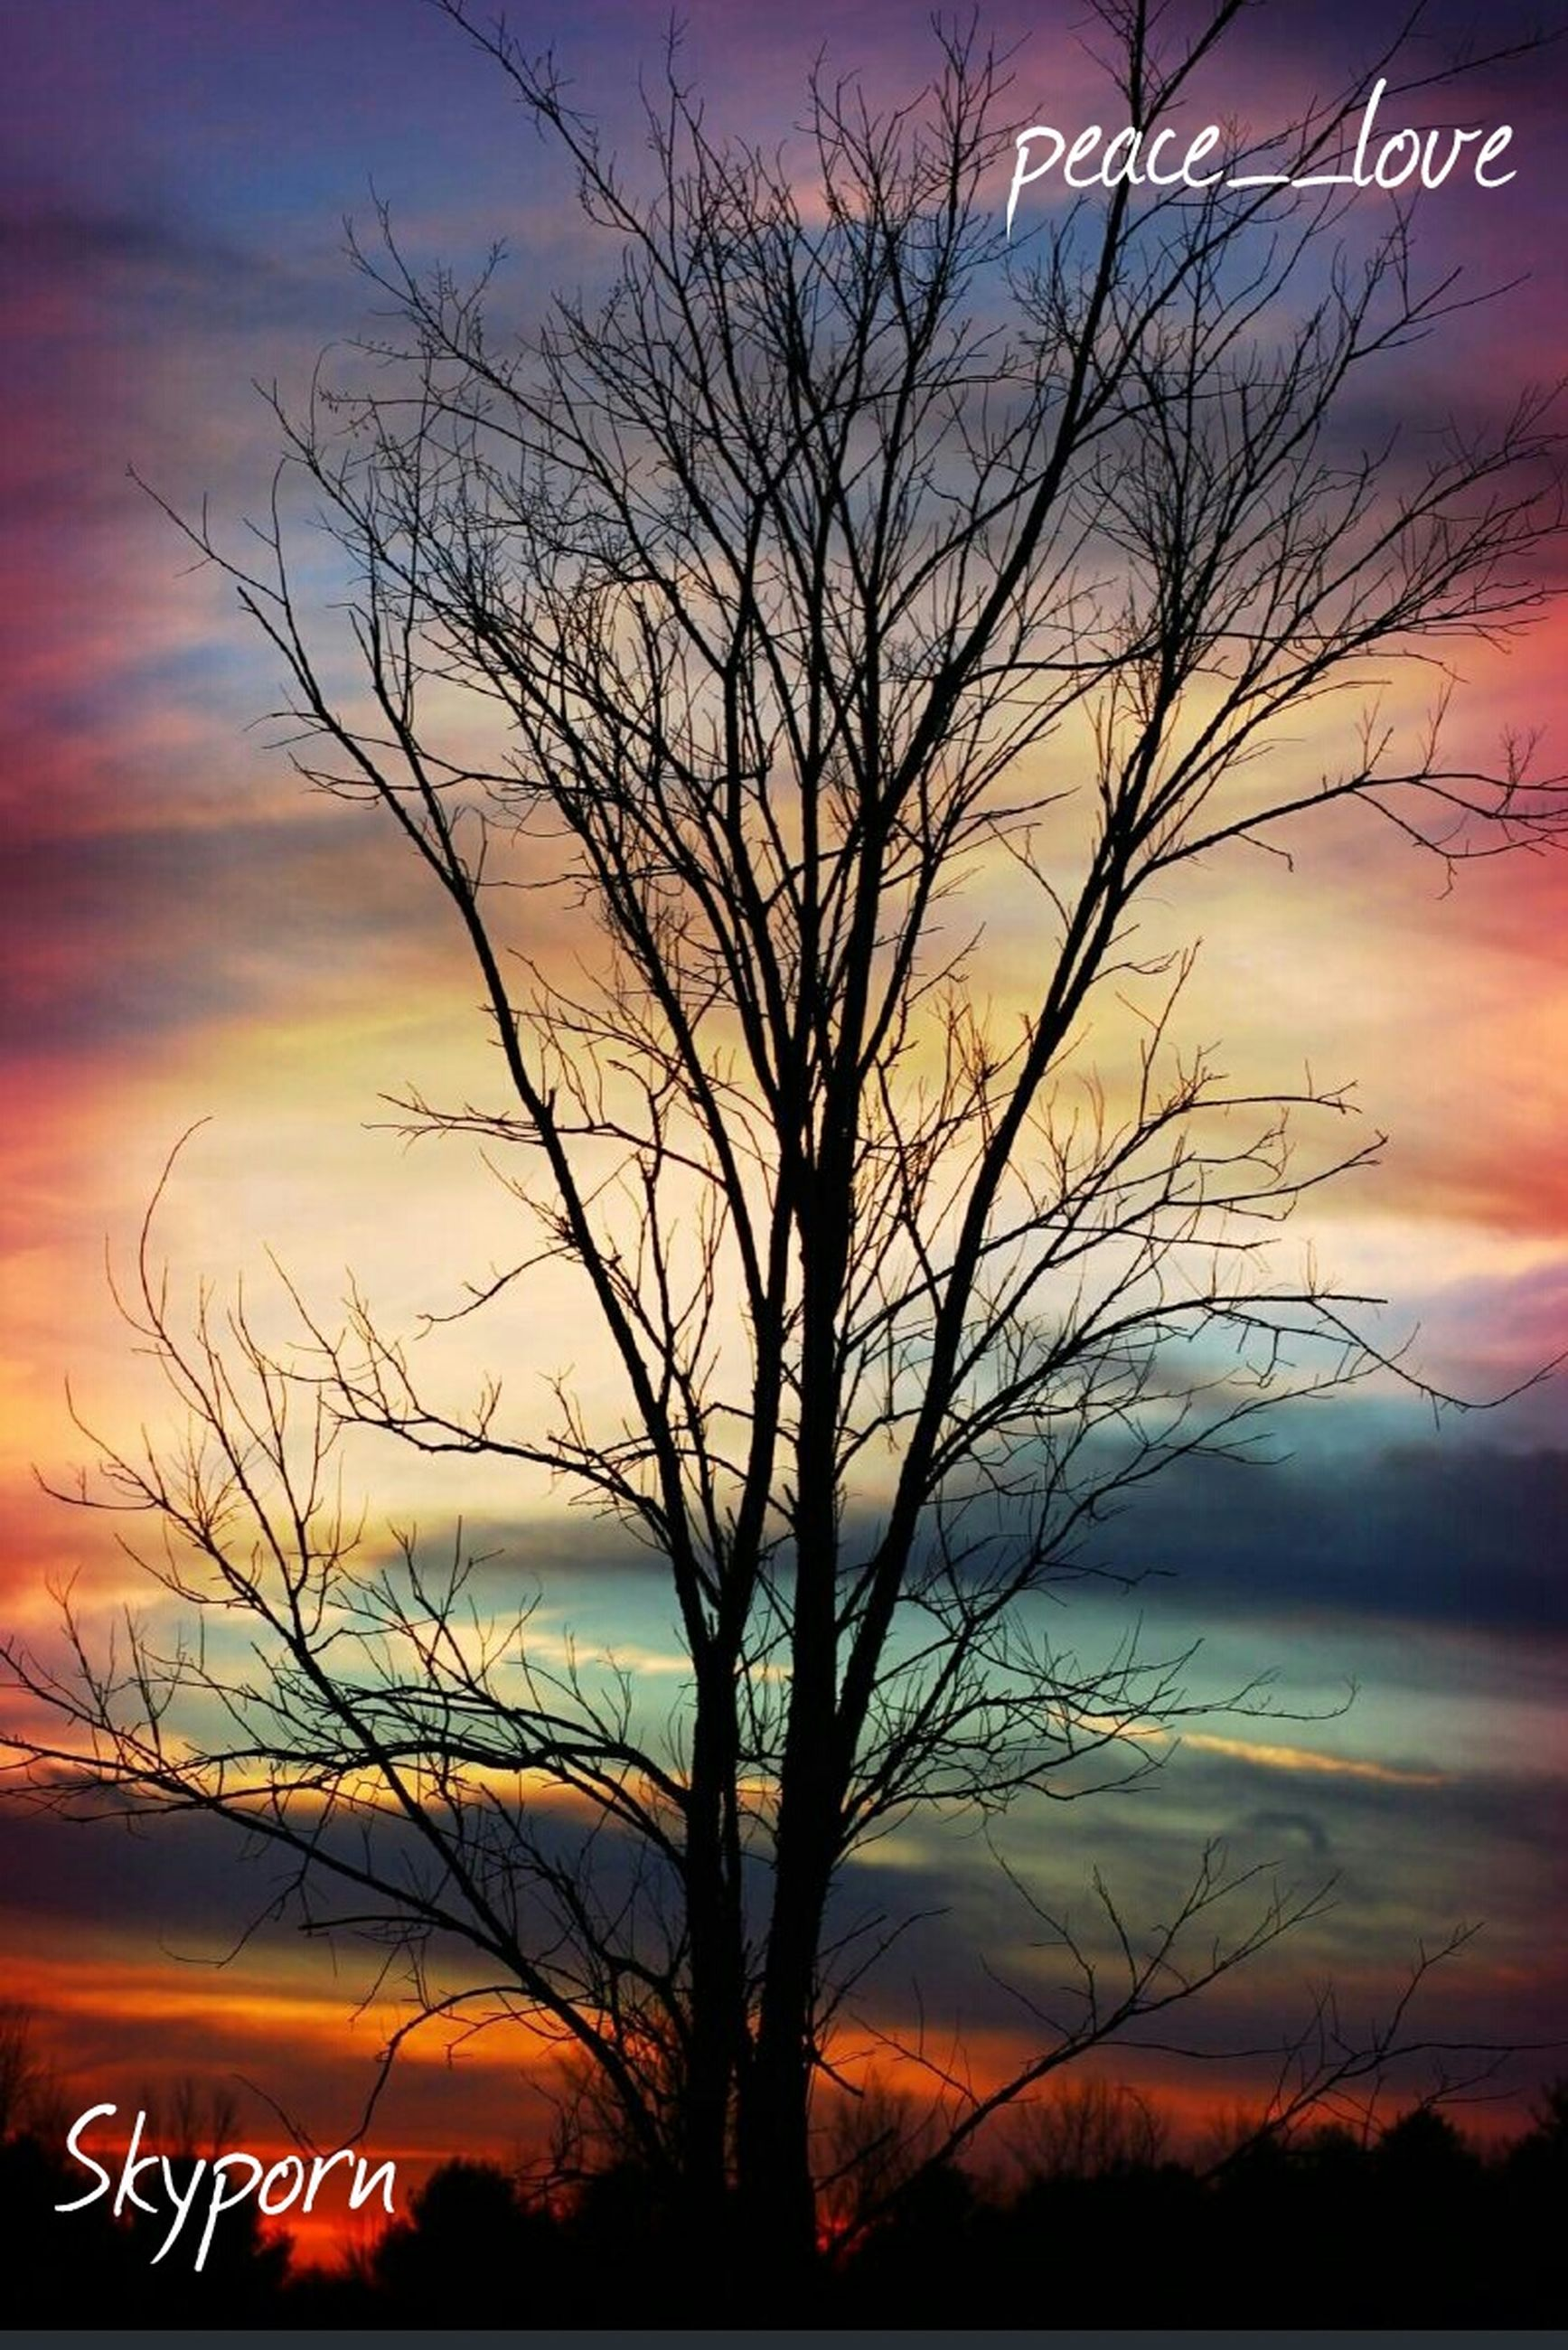 sunset, silhouette, bare tree, orange color, sky, tranquility, scenics, beauty in nature, tranquil scene, tree, branch, nature, dramatic sky, cloud - sky, idyllic, moody sky, majestic, outdoors, dusk, romantic sky